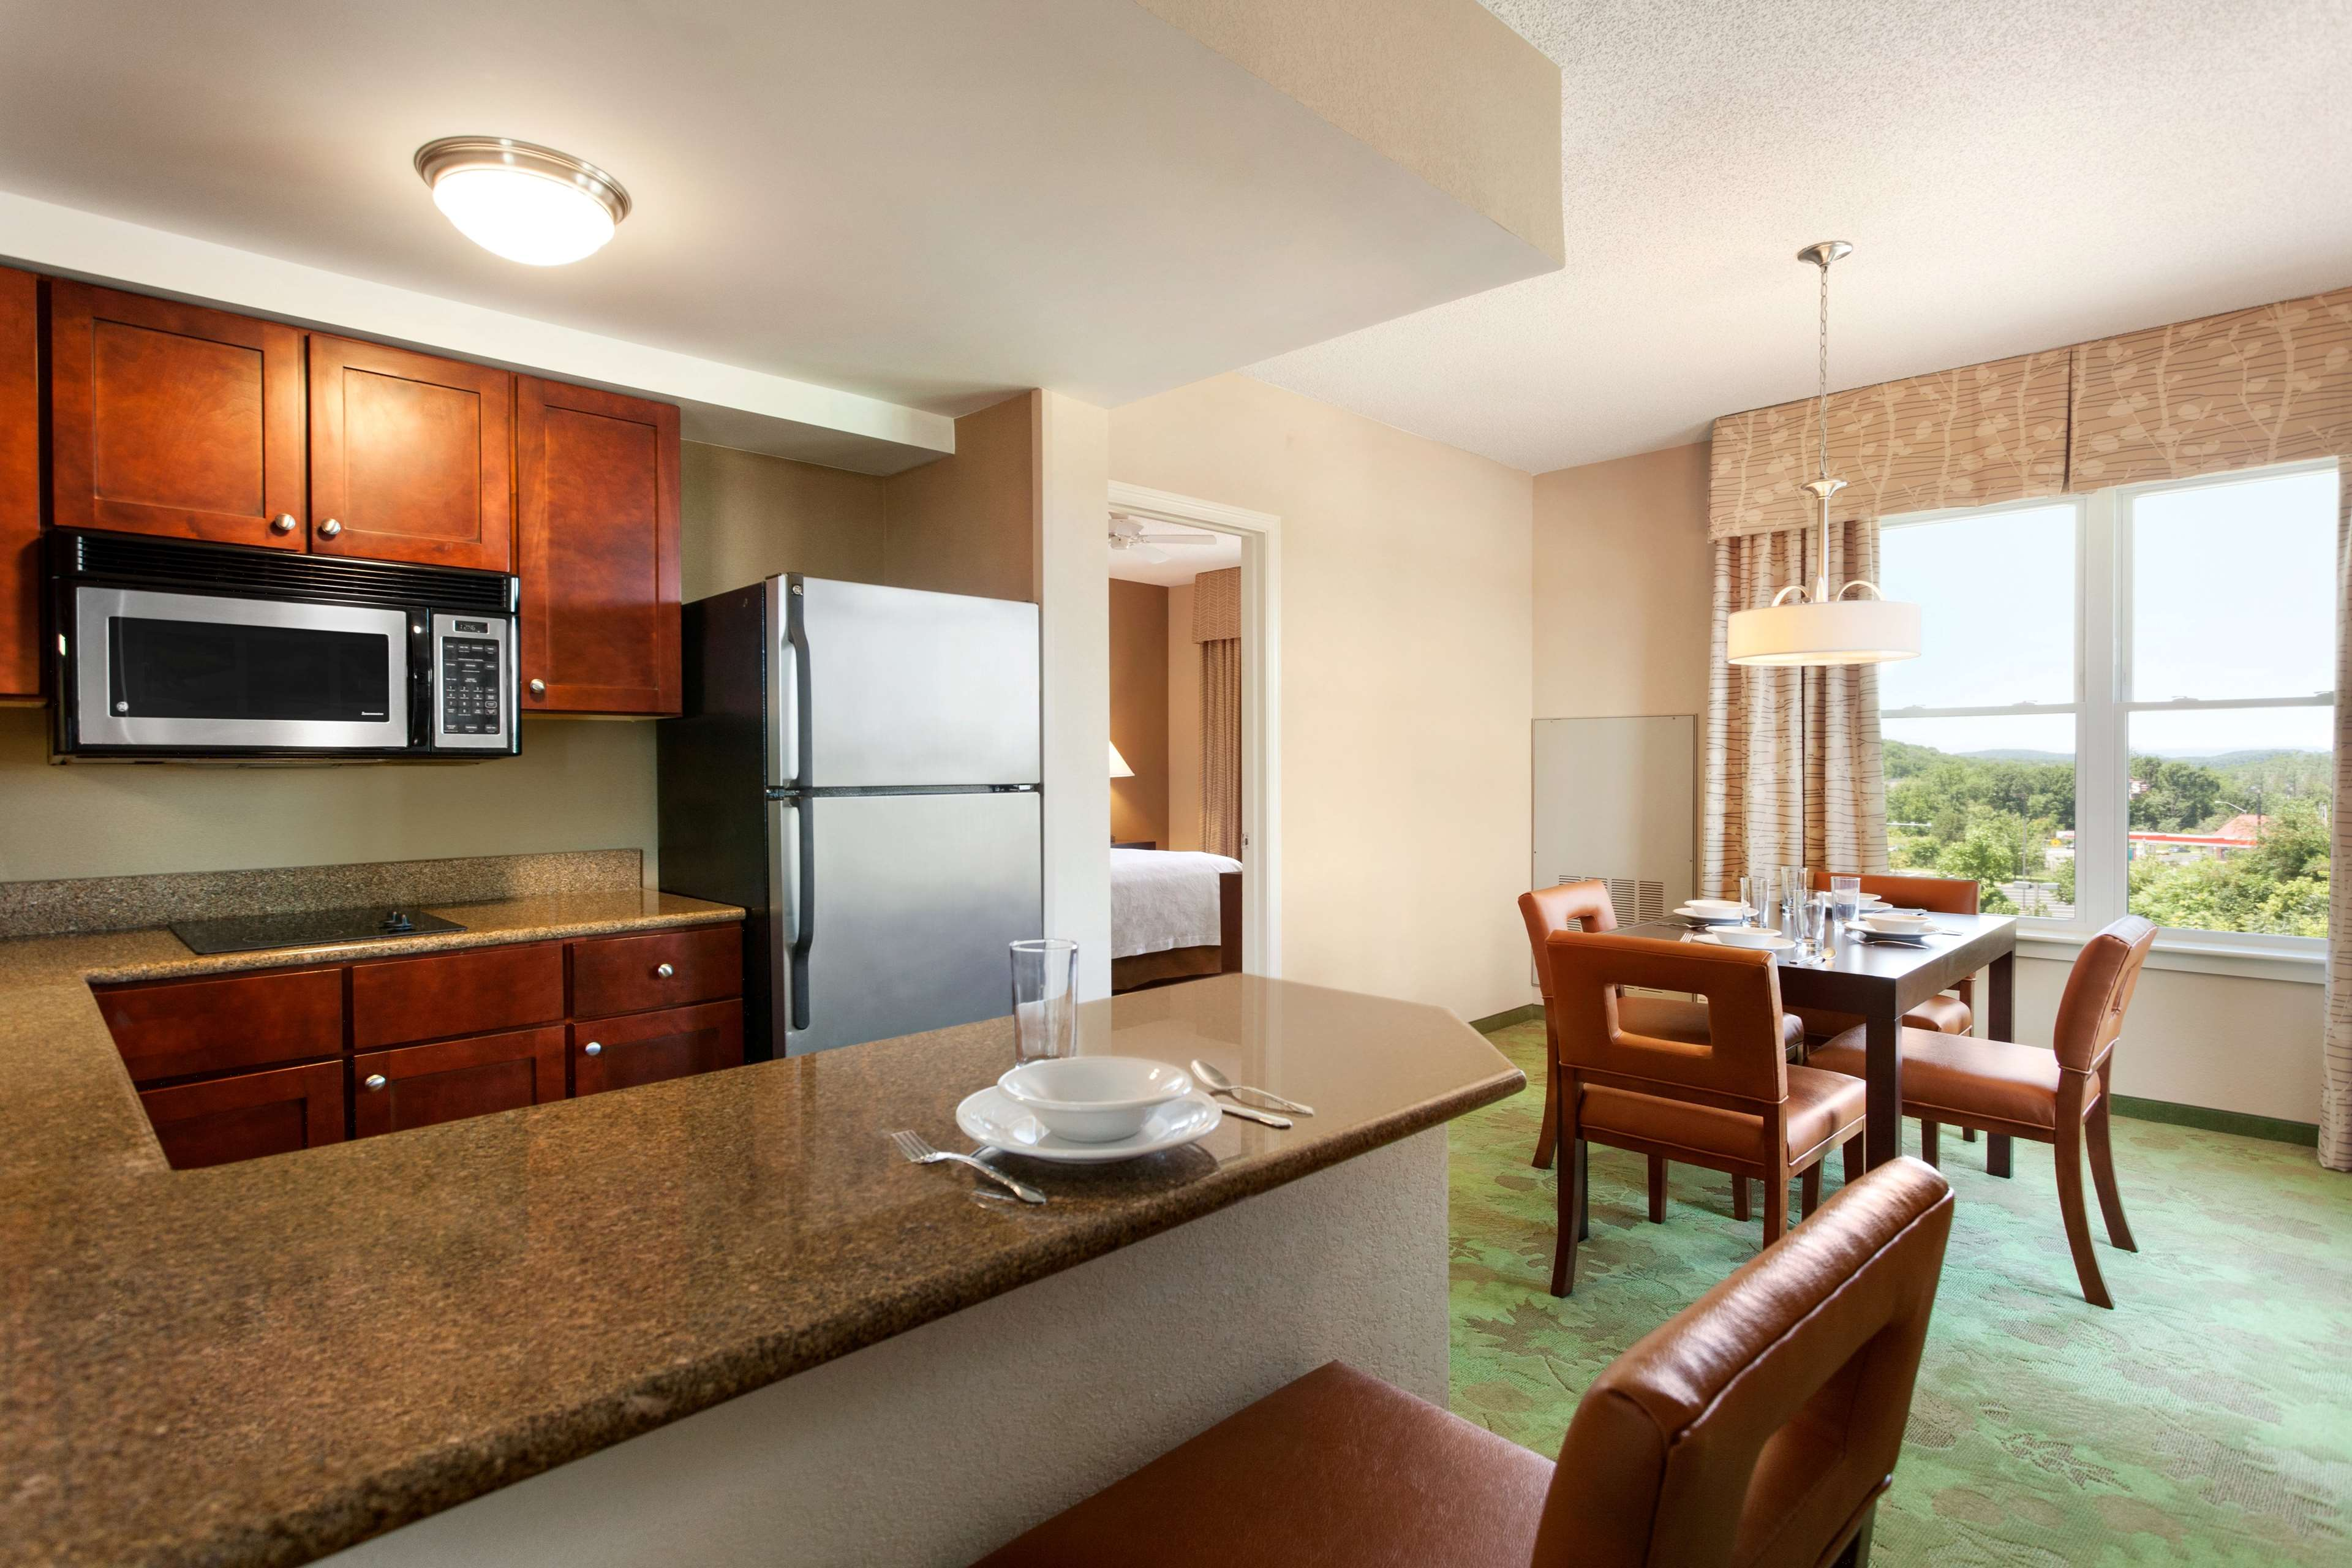 Homewood Suites by Hilton Reading image 19